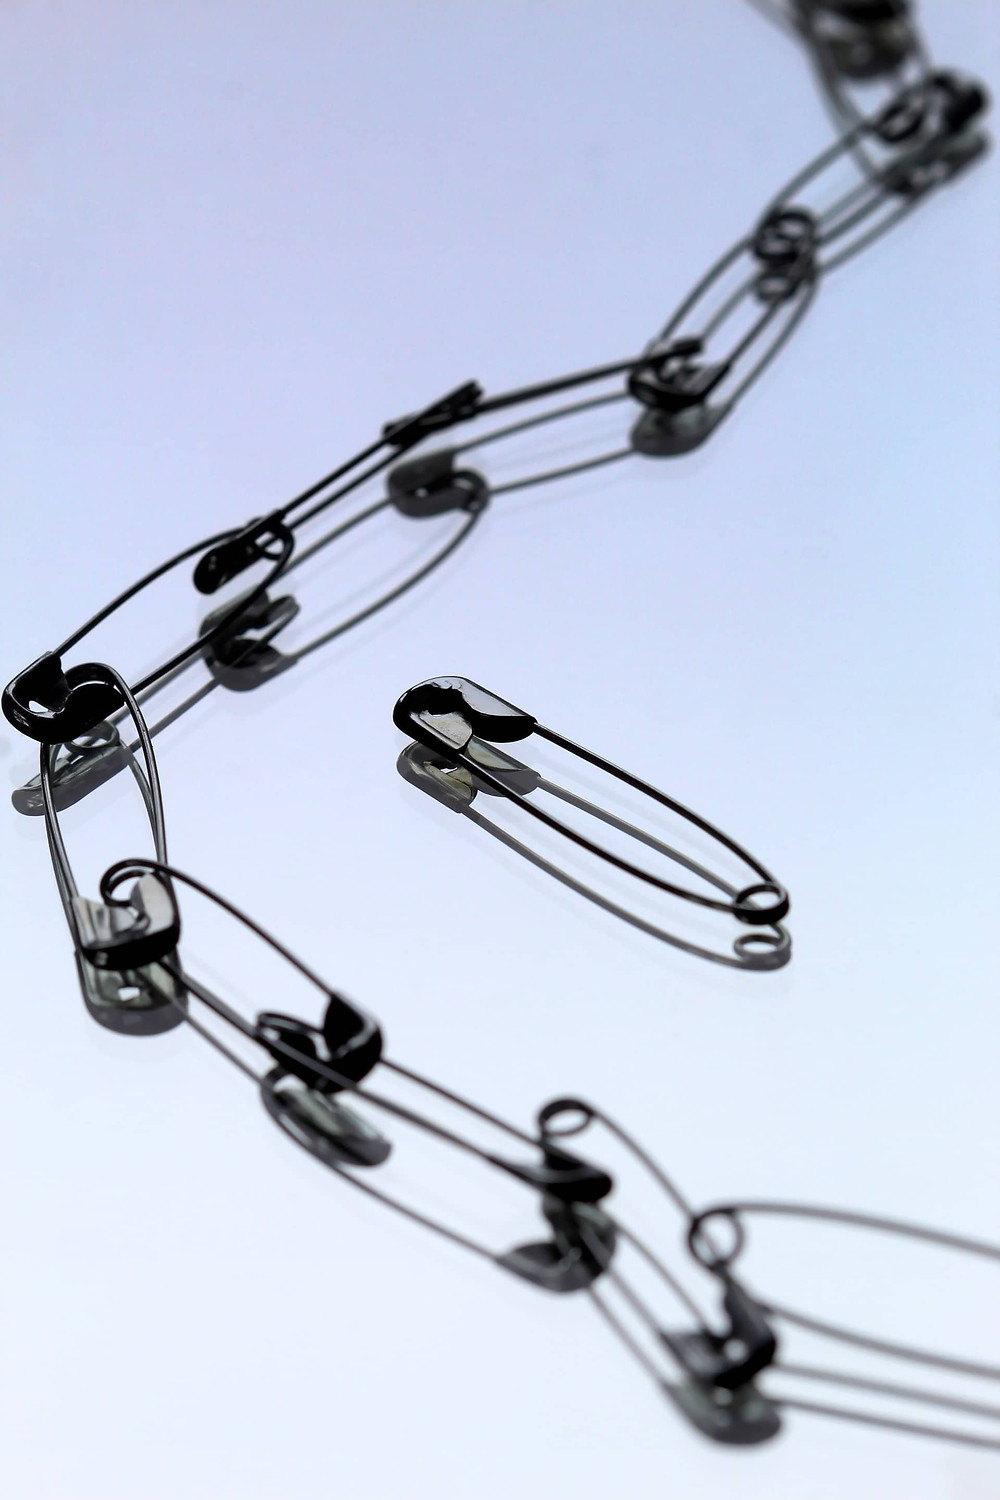 Chain of safety pins, one separated